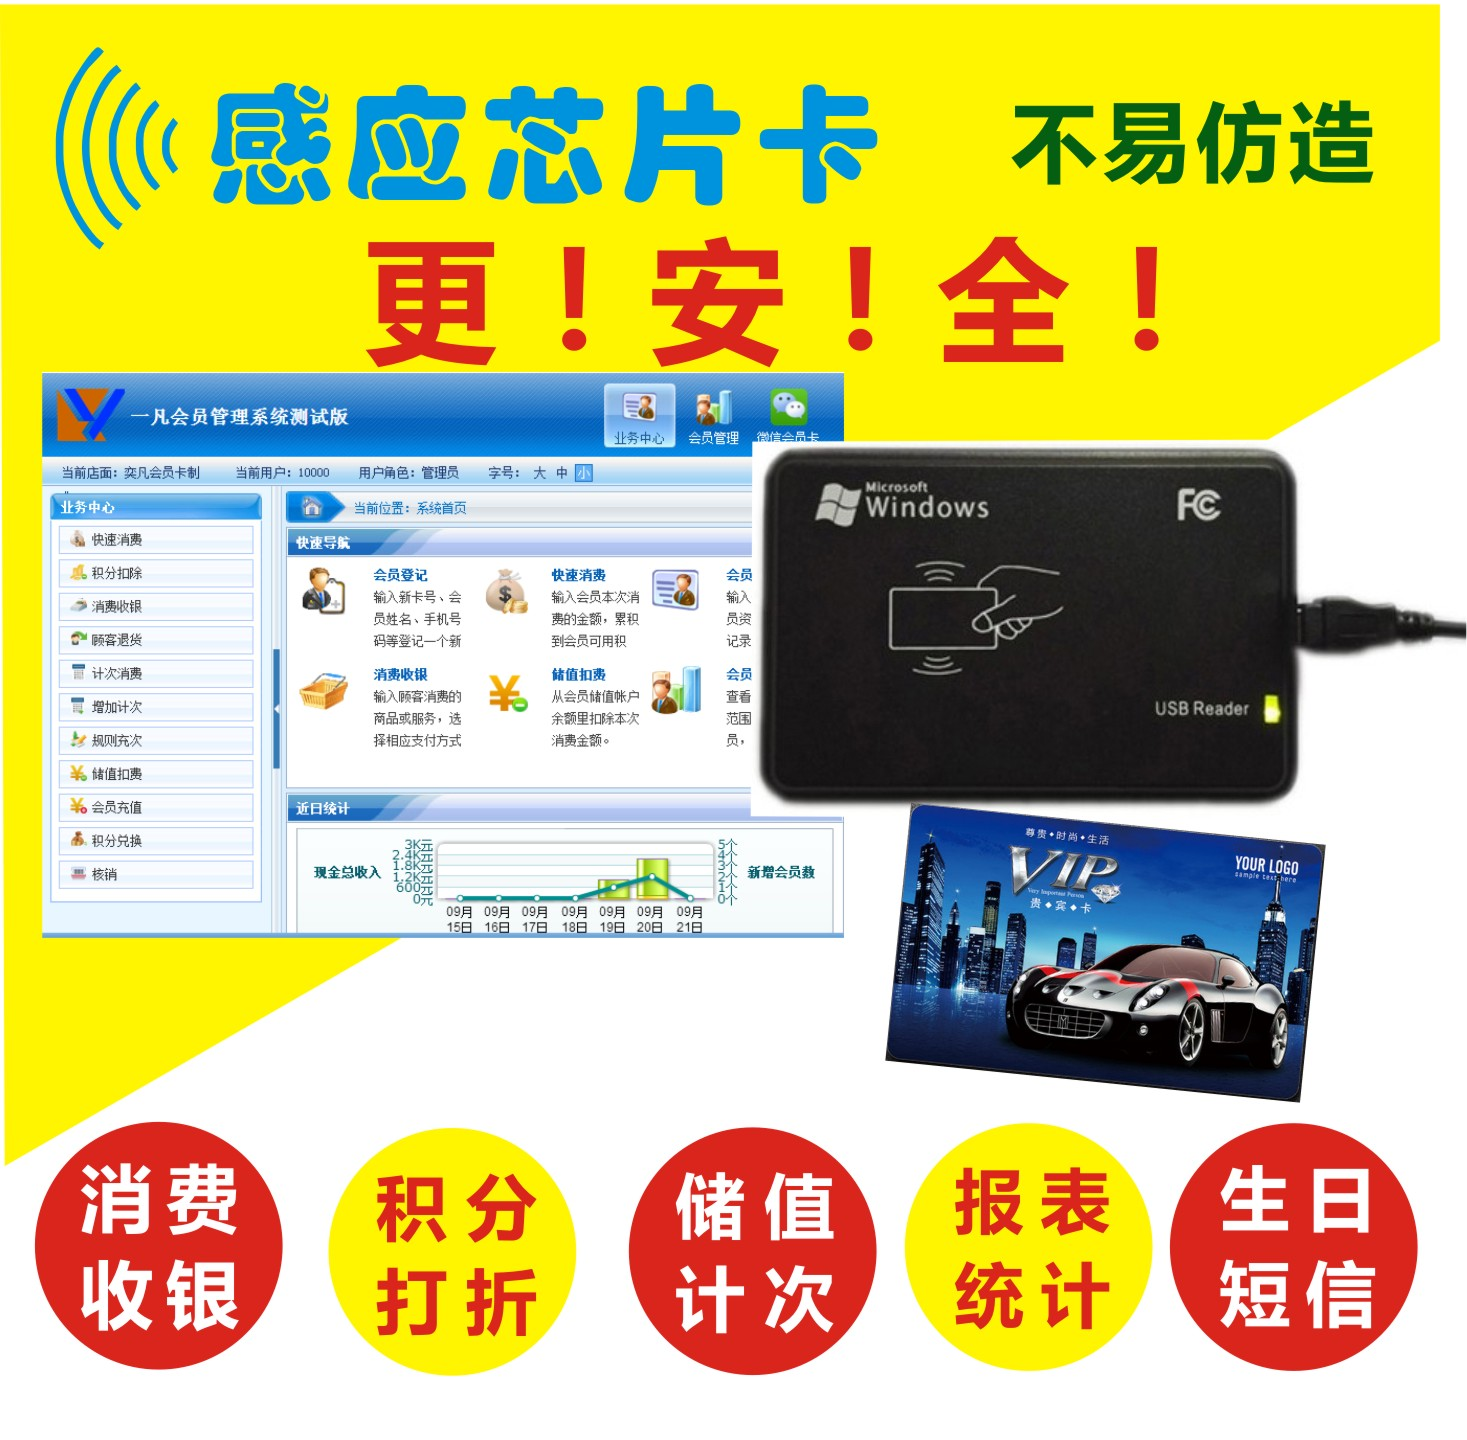 id card m1 induction membership card making contactless chip card mobile phone member software chain store - Card Making Software